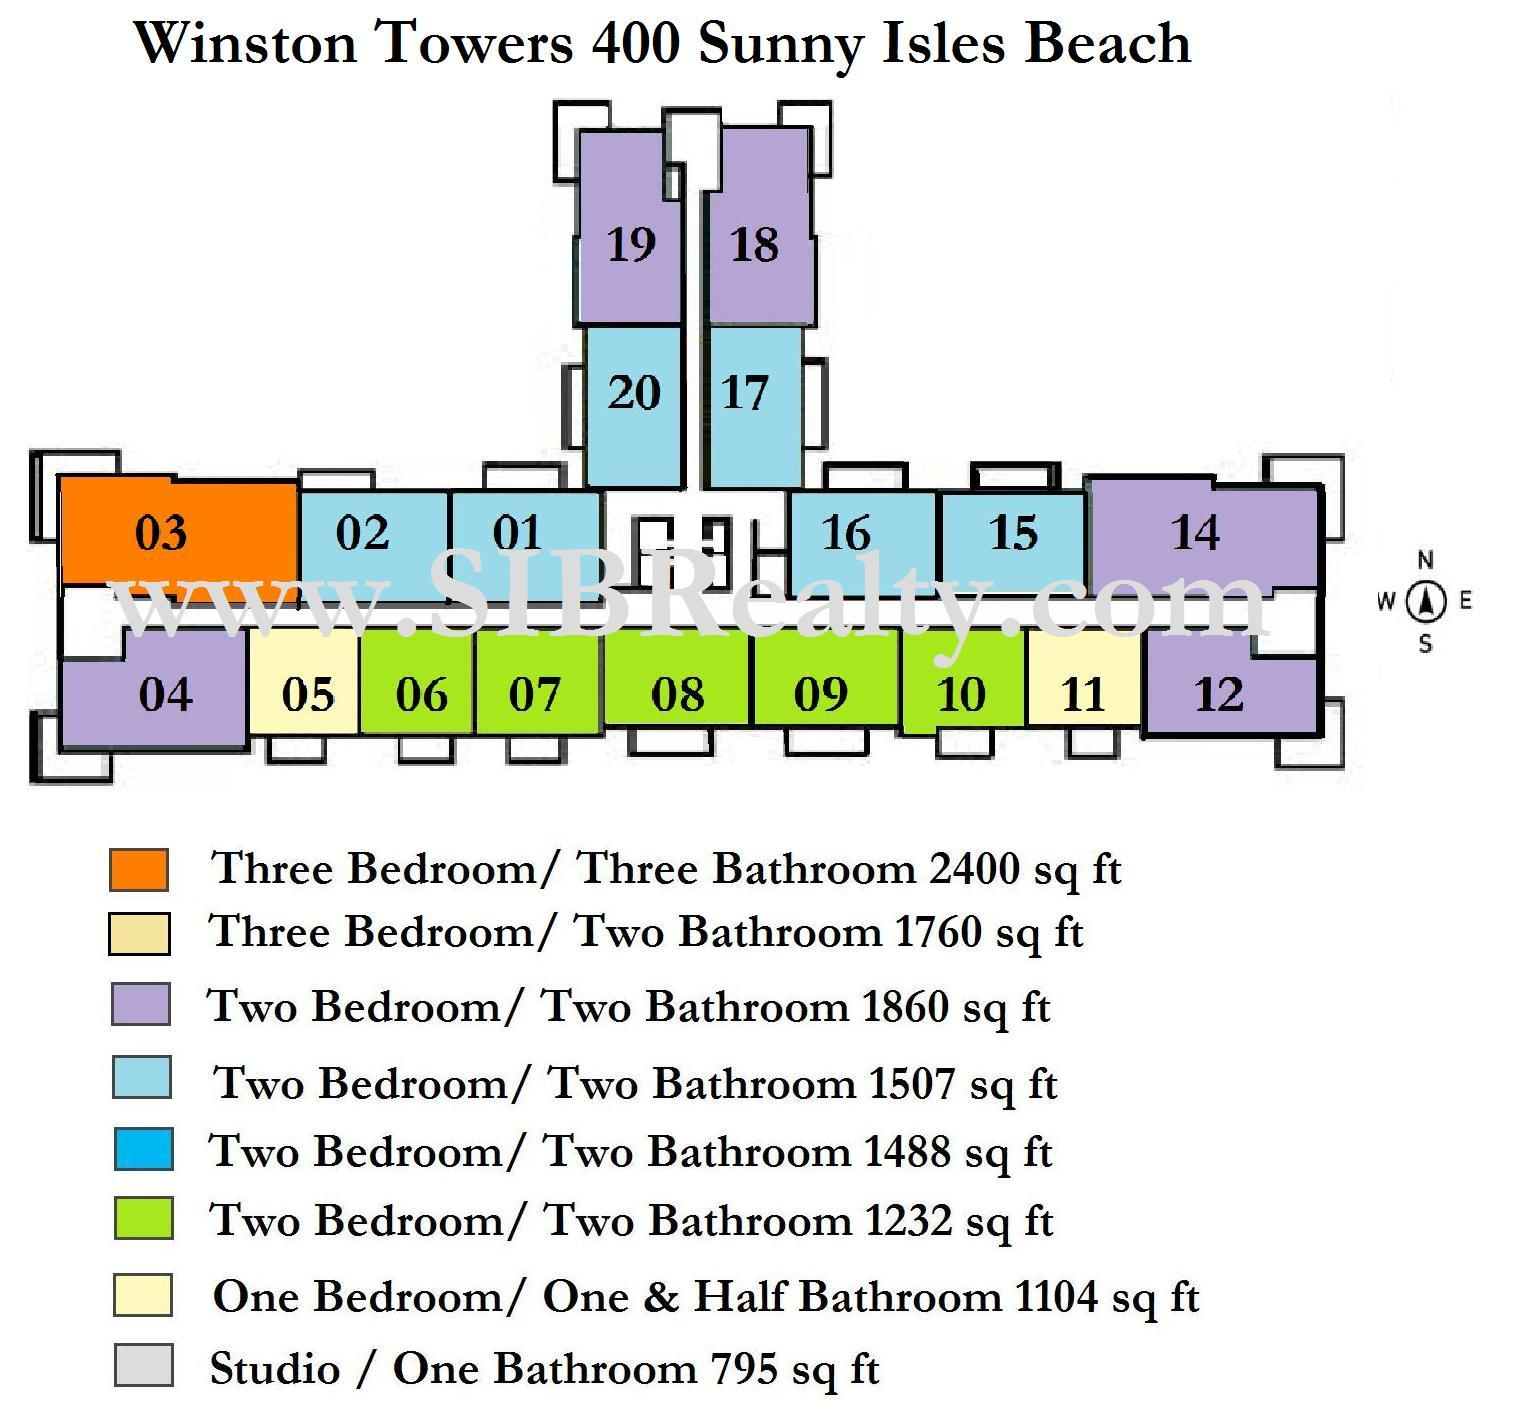 Winston Towers 400 Sunny Isles Beach Site Plan